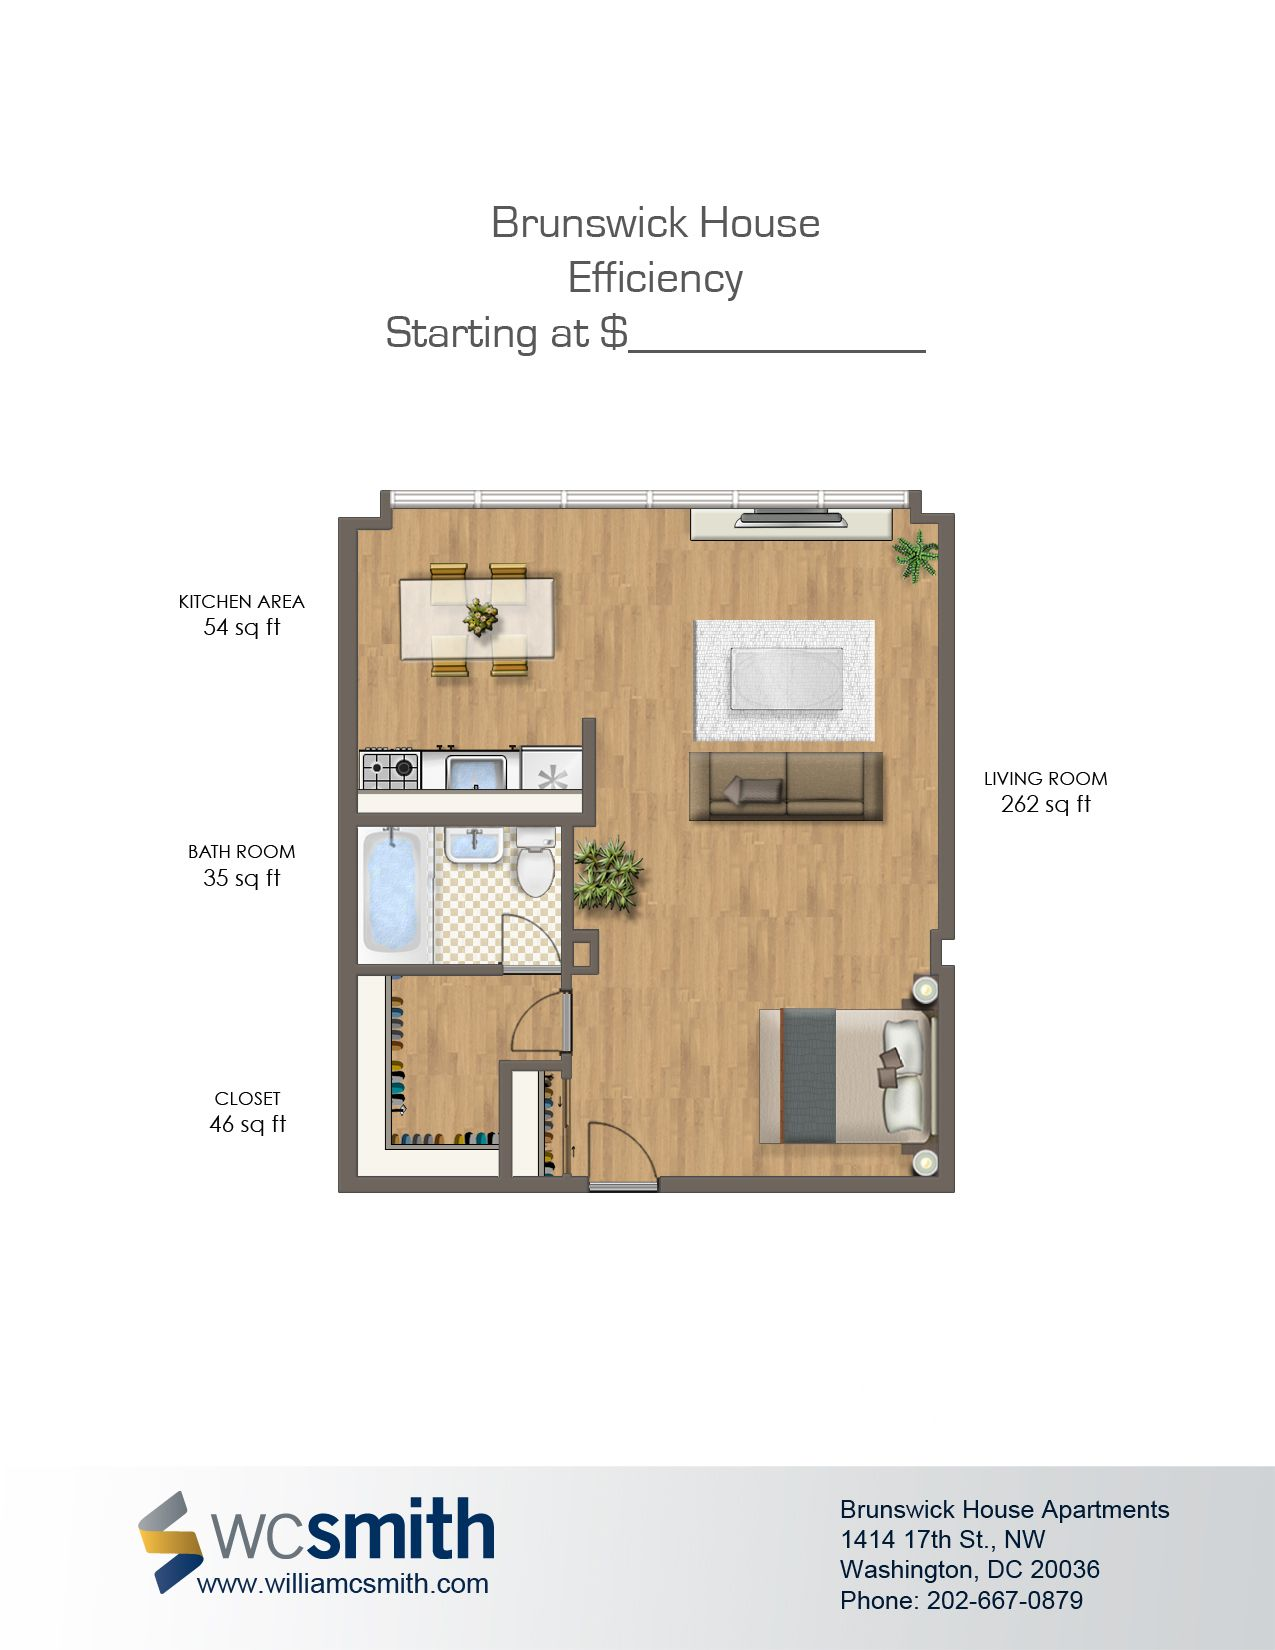 Brunswick House Apartments In Washington Dc Wc Smith Home Addition Plans Brunswick House Efficiency House